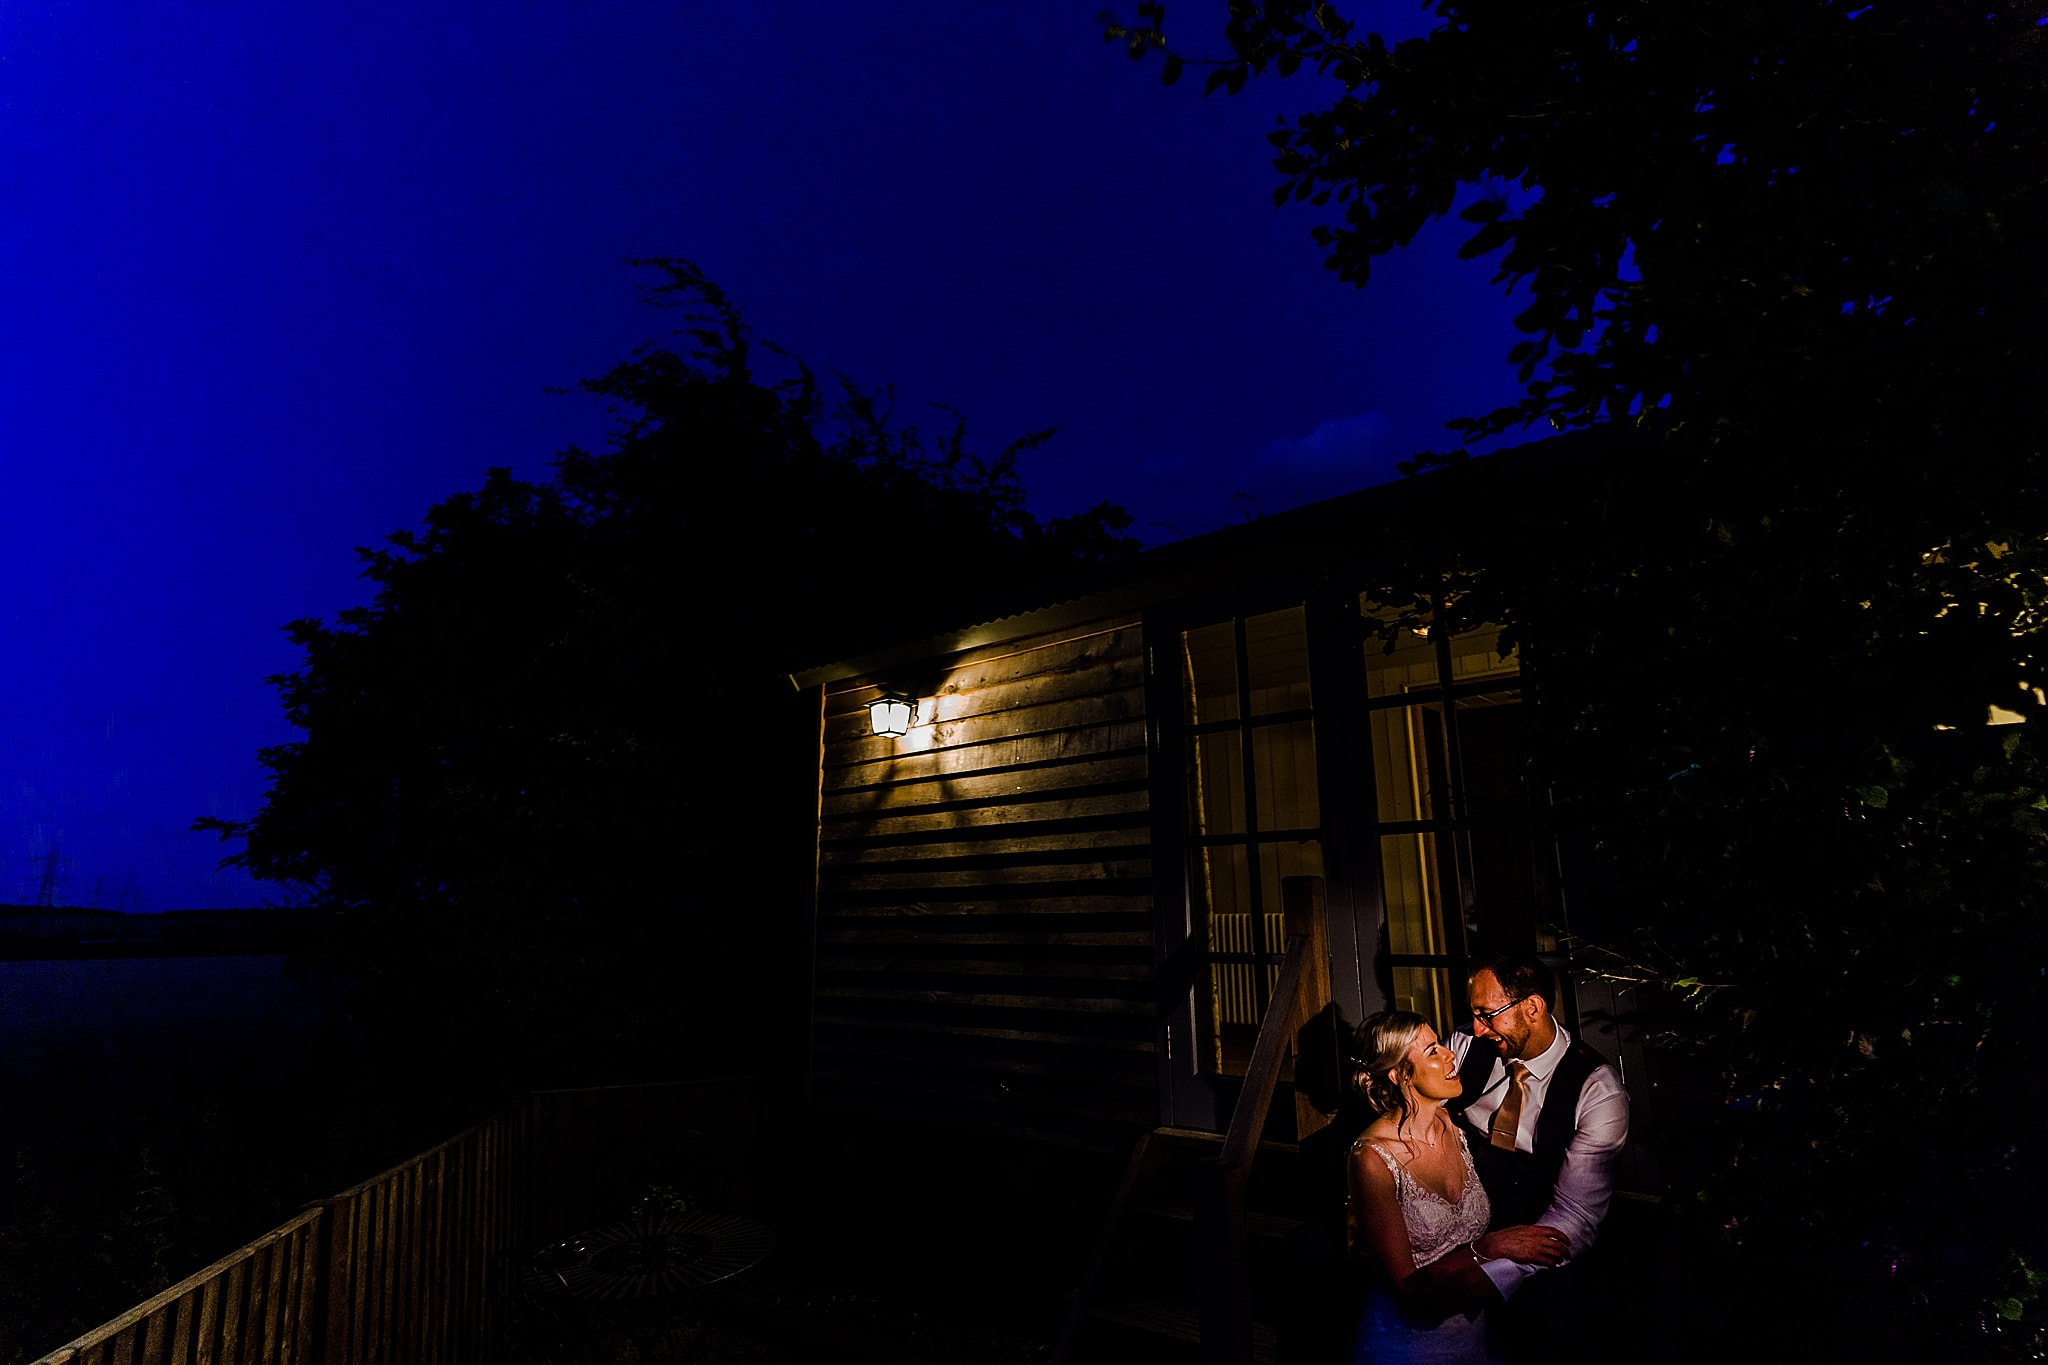 Bride and groom sit on the steps of the bridal carriage at night at Carriage Hall